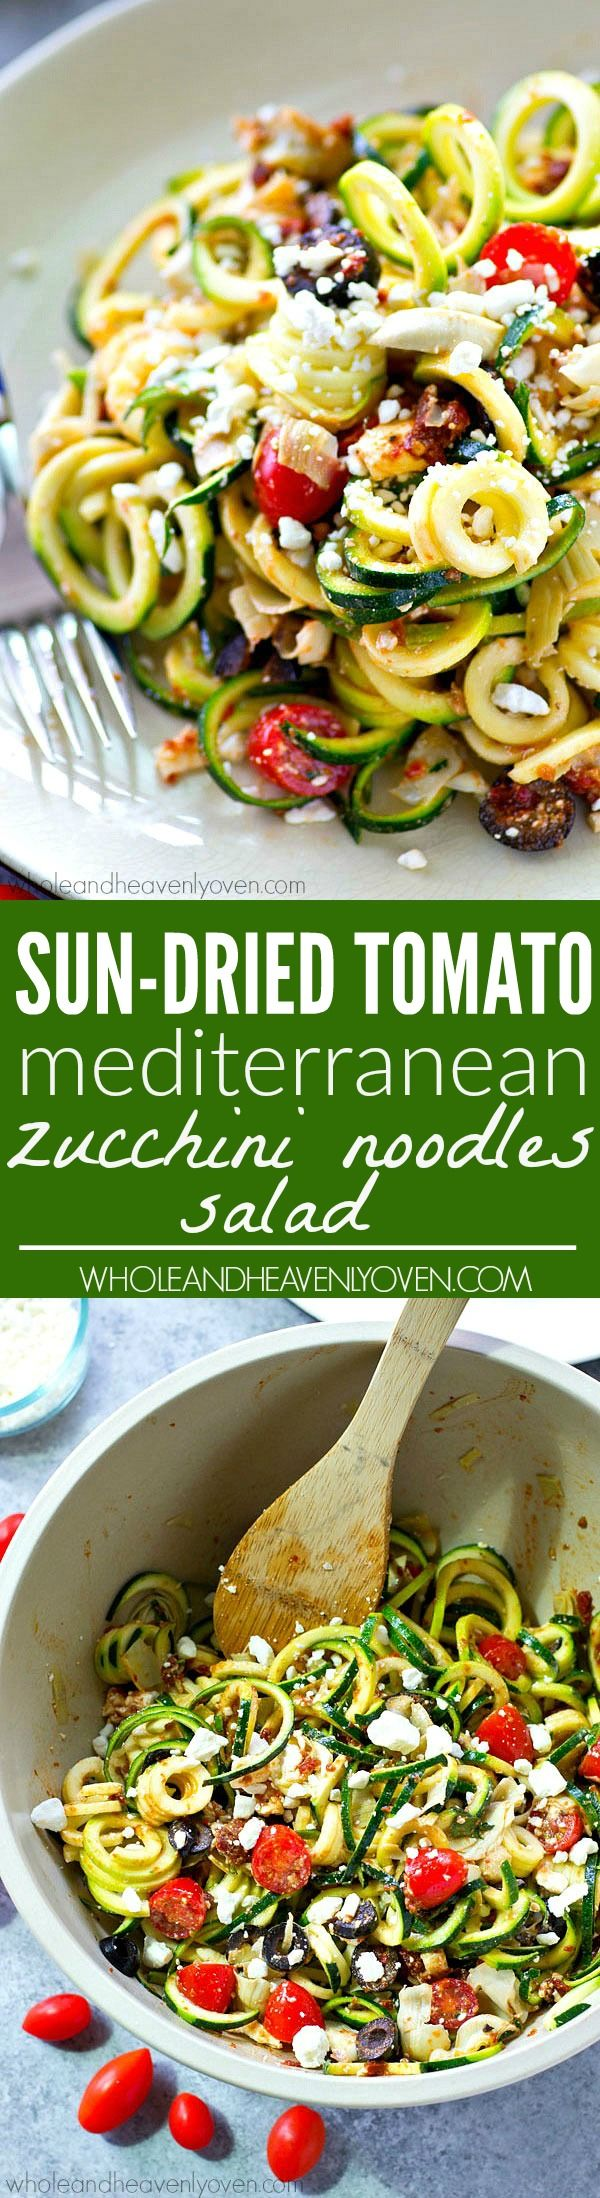 Sun-Dried Tomato Mediterranean Zucchini Noodles Salad | Whole and Heavenly Oven | You won't be able to stop eating this flavorful zucchini noodles salad! Loaded with tons of fresh, healthy Mediterranean goodness and an unbelievable sun-dried tomato dressing.